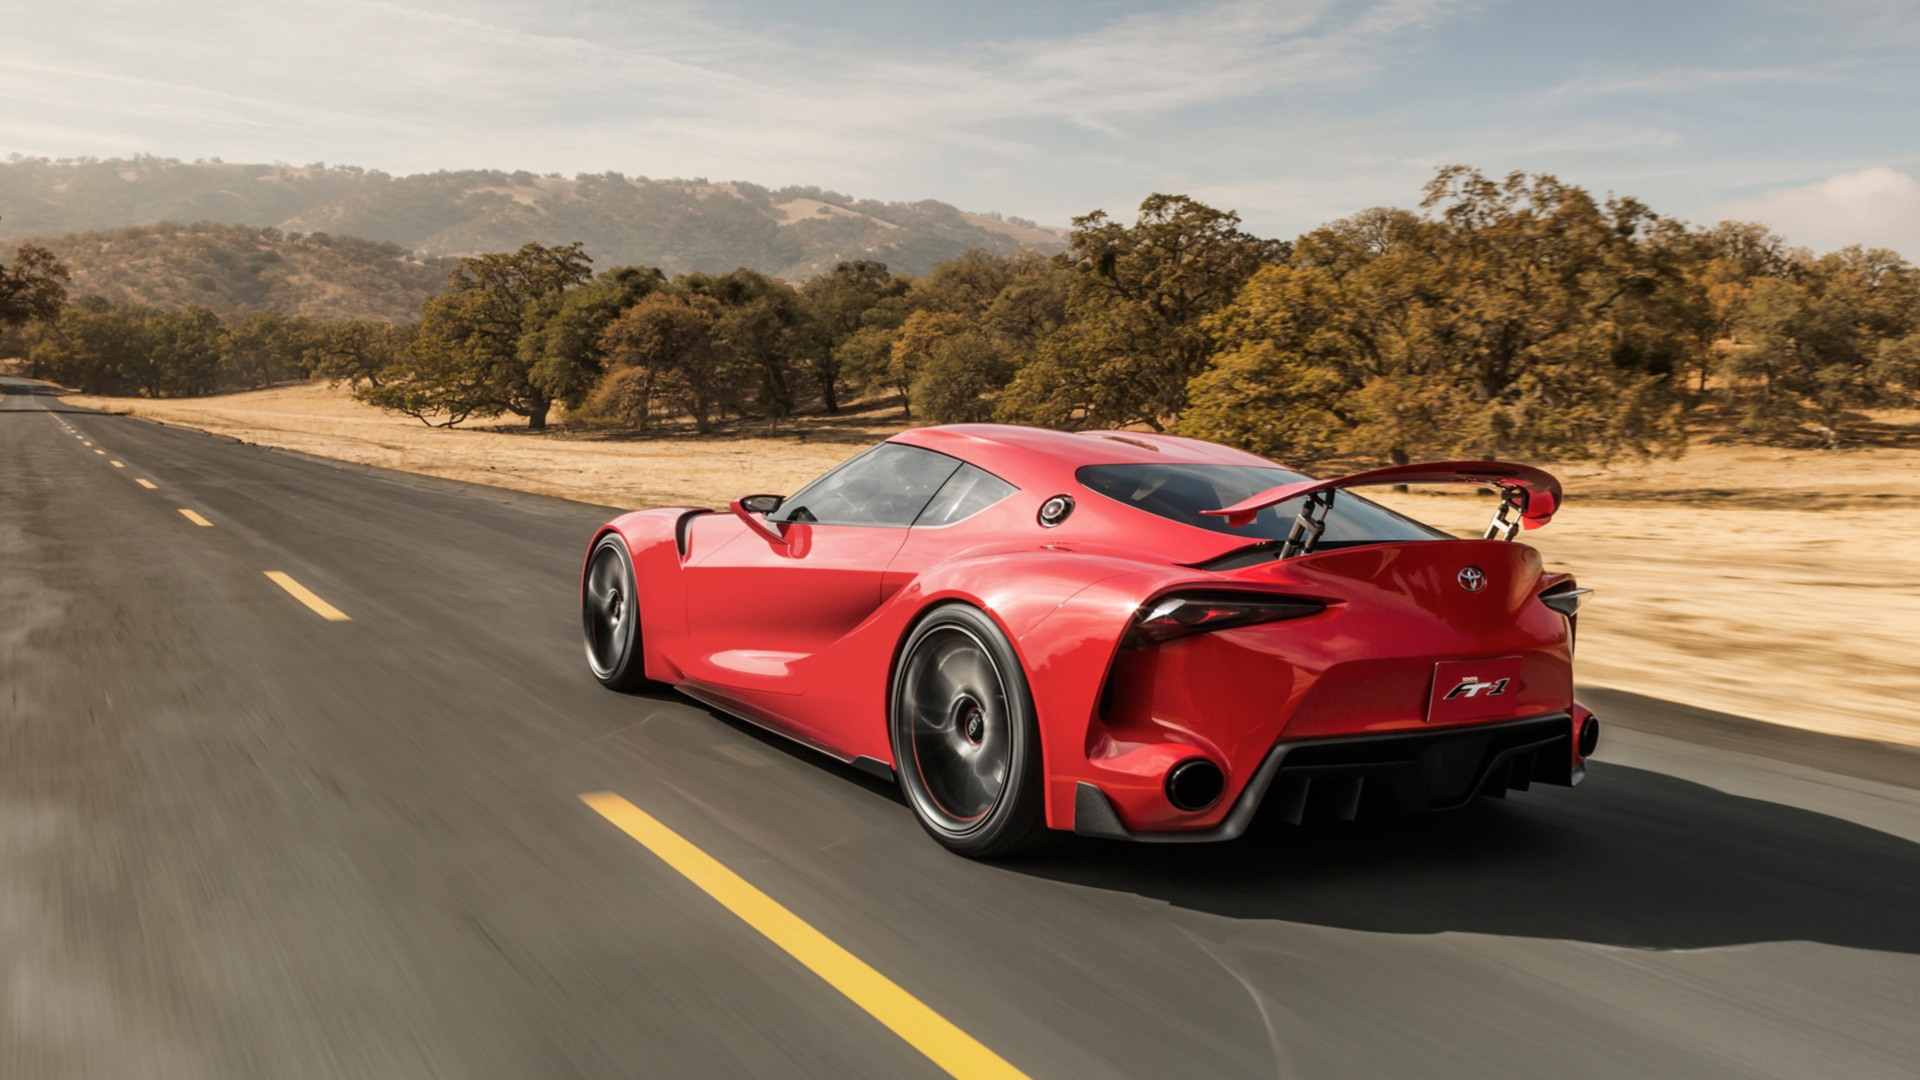 19 2014 Toyota Ft 1 Concept Hd Wallpapers Backgrounds